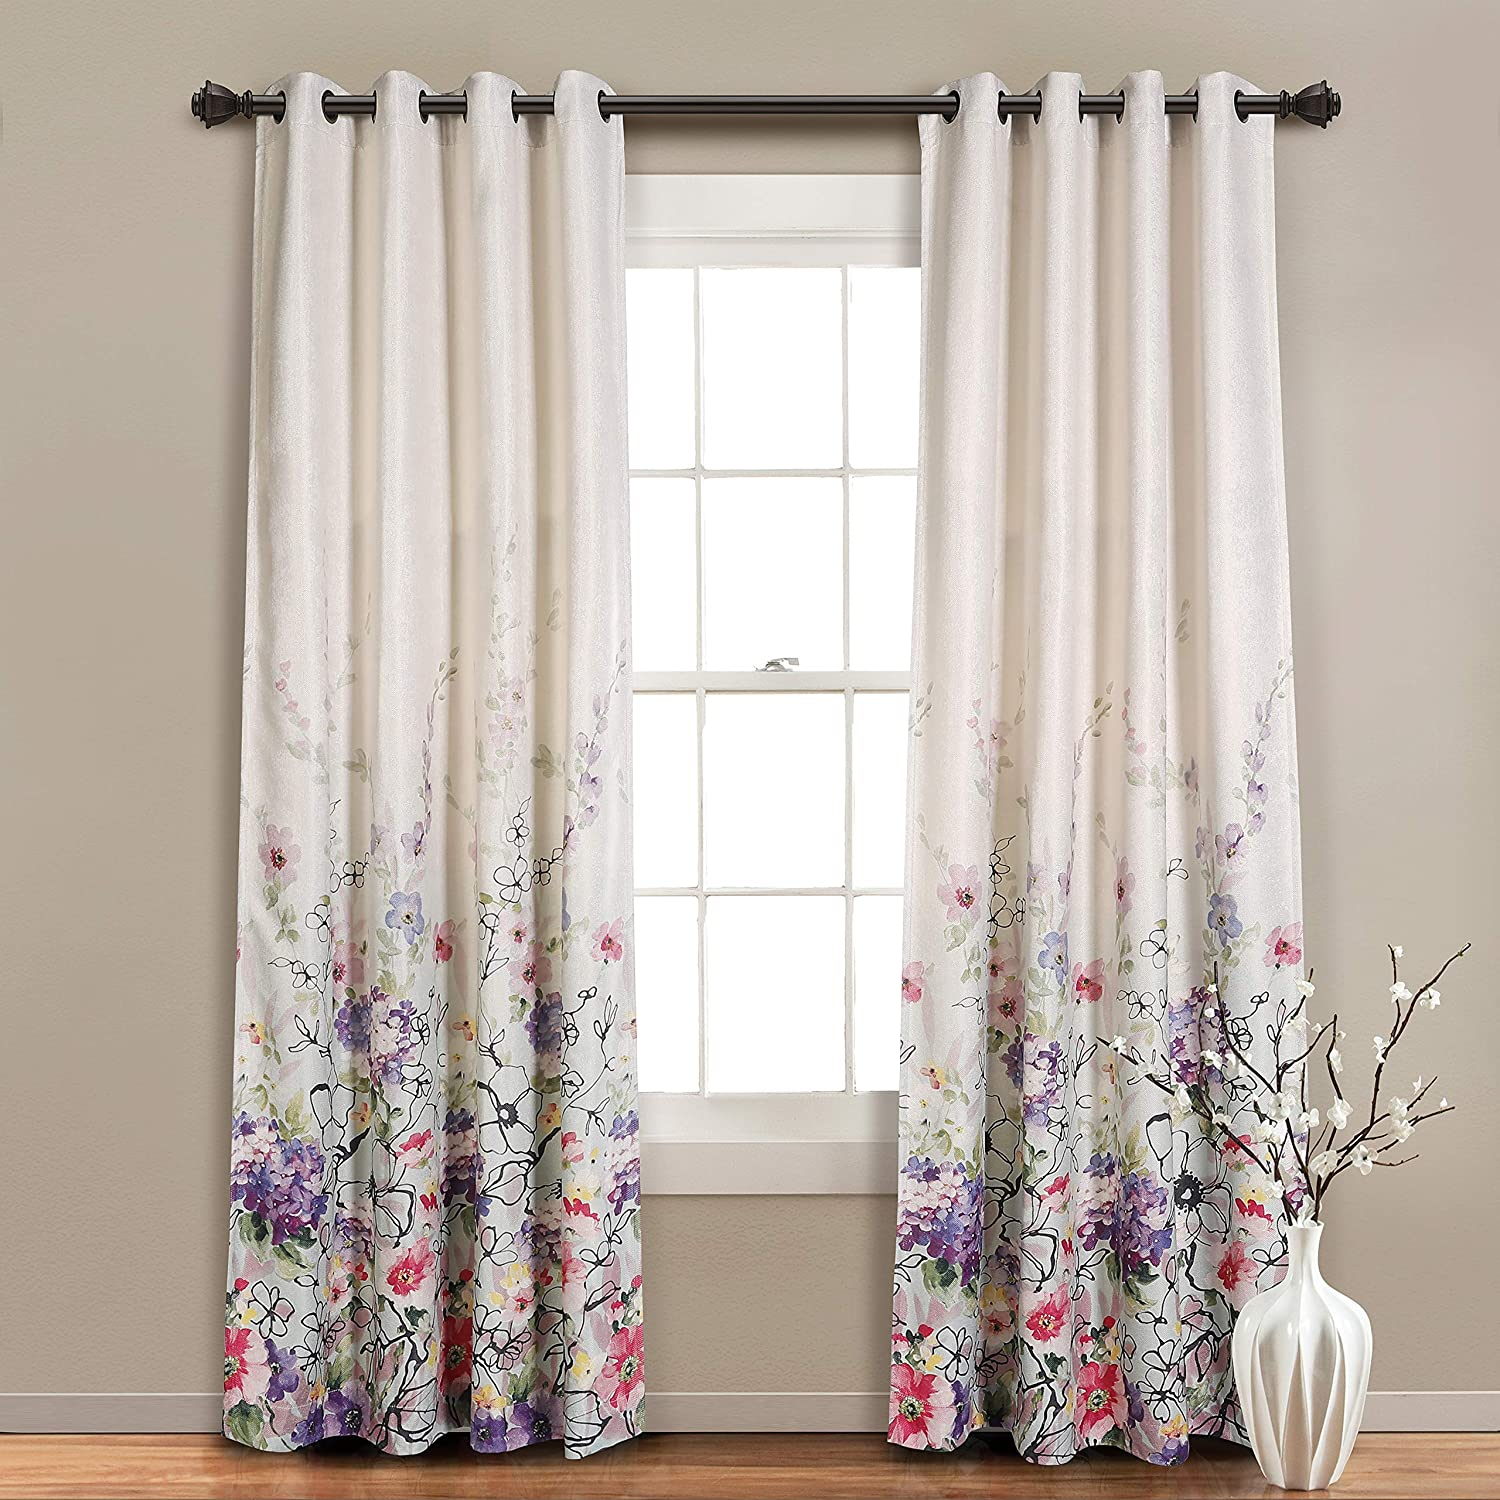 MYSKY HOME Floral Design Print Grommet top Thermal Insulated Faux Linen Room Darkening Curtains, 52 x 95 Inch, Purple, 1 Panel